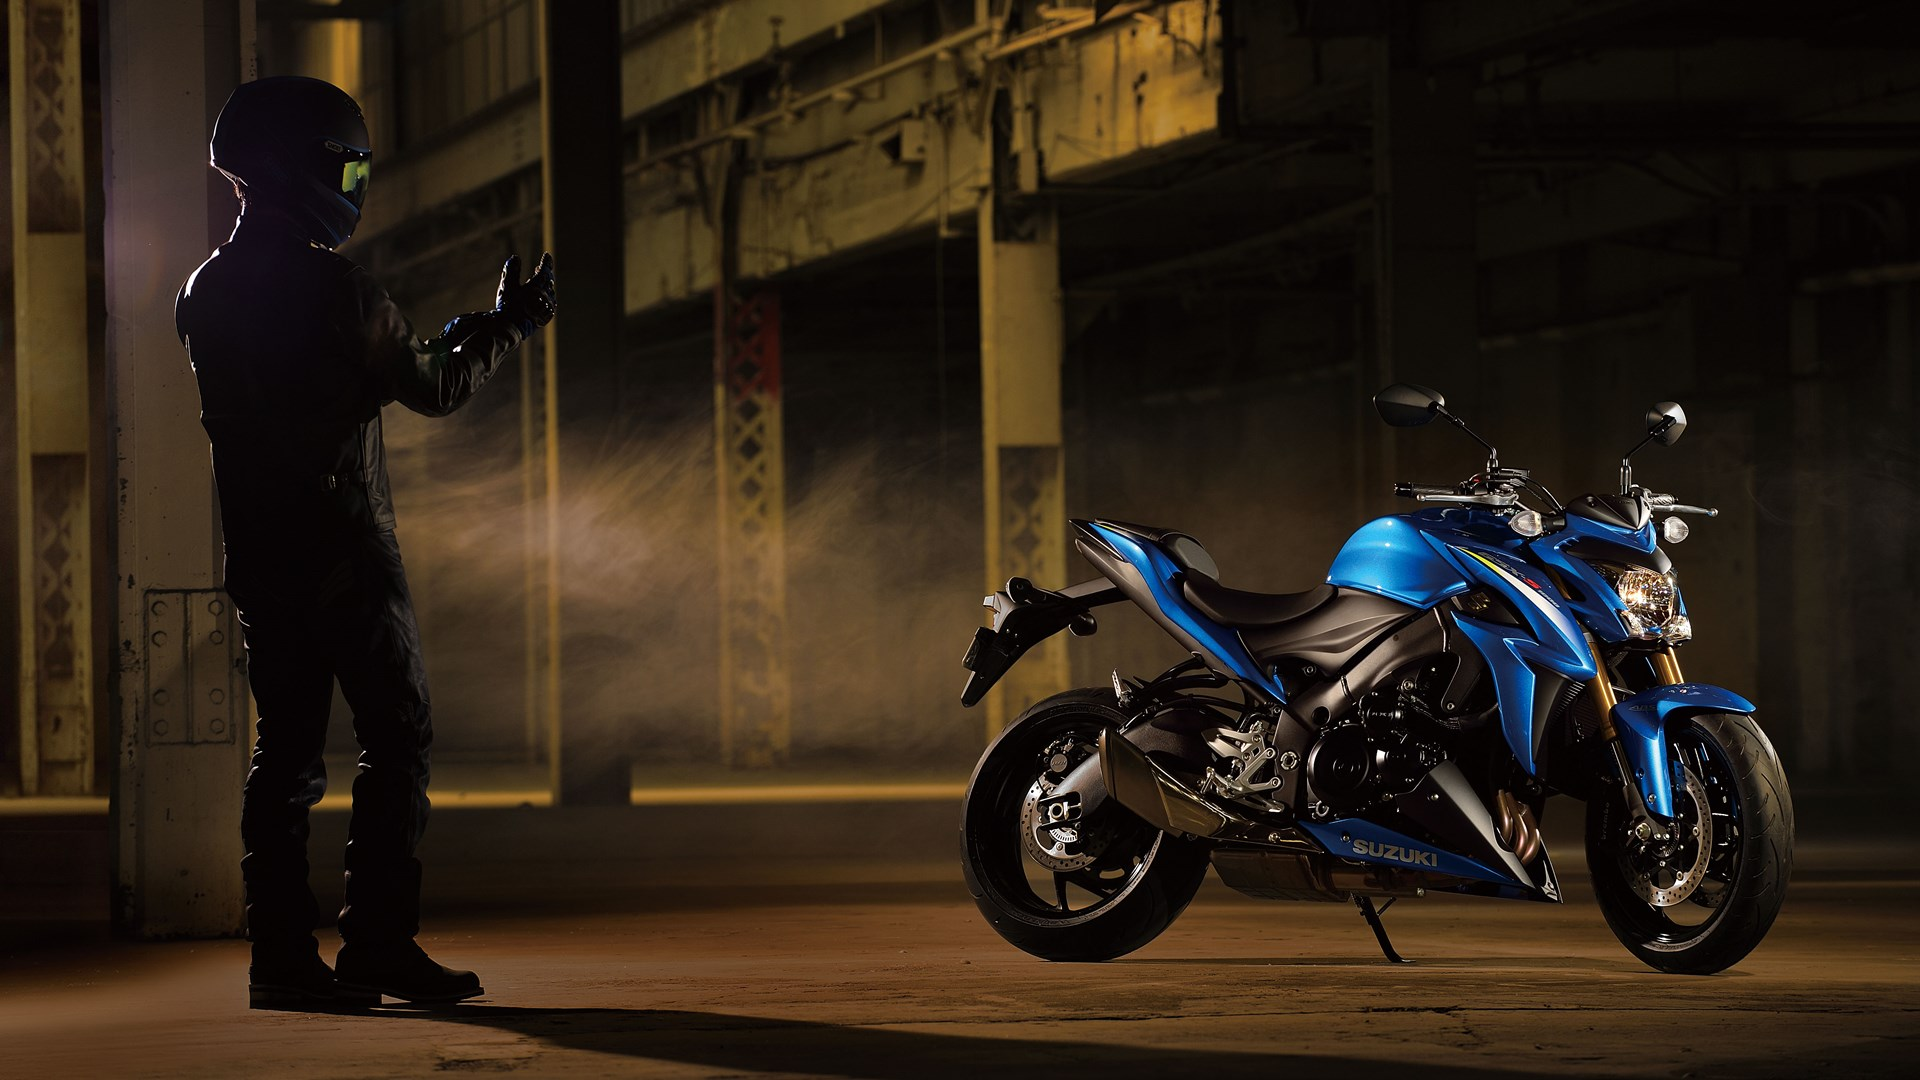 2015 Suzuki GSX-S1000 HD wallpaper